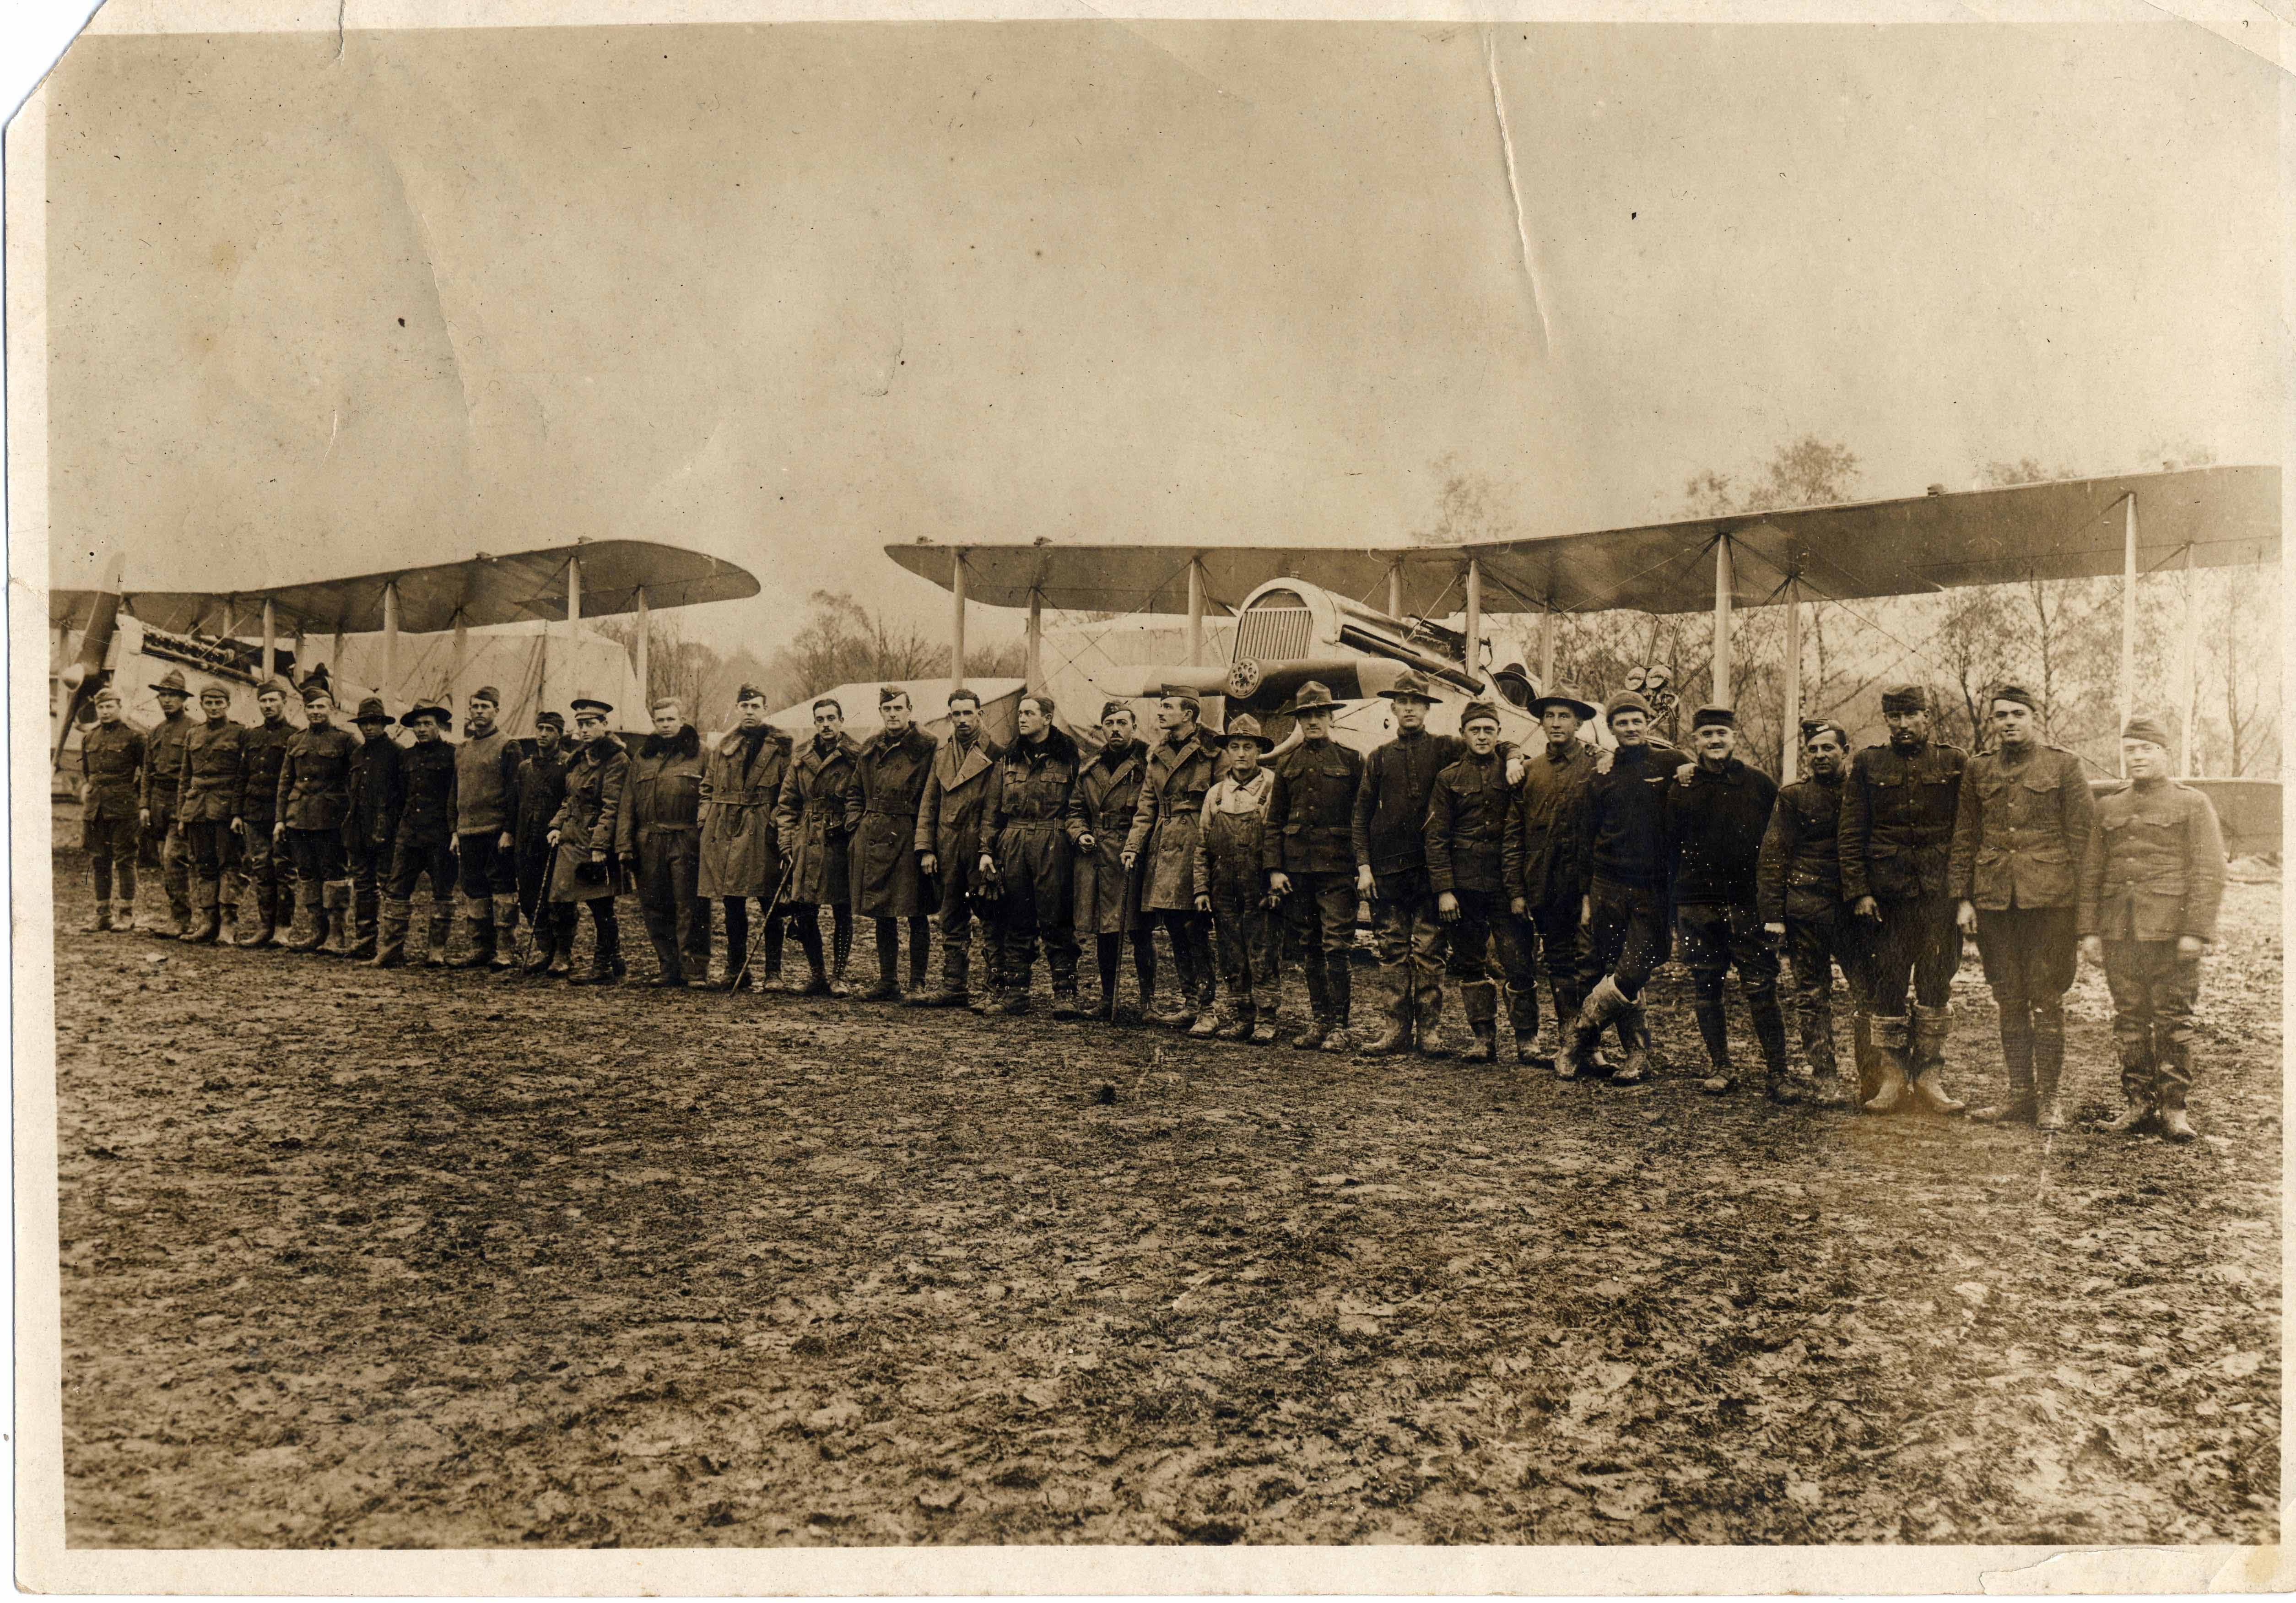 A sepia-colored photo of a diagonal line of about 30 men in front of DH-4 planes. Some of the men are more casually dressed and appear to be enlisted men; a group of about 9 men in the middle of the line appear to be officers. The foreground appears to be a muddy field.